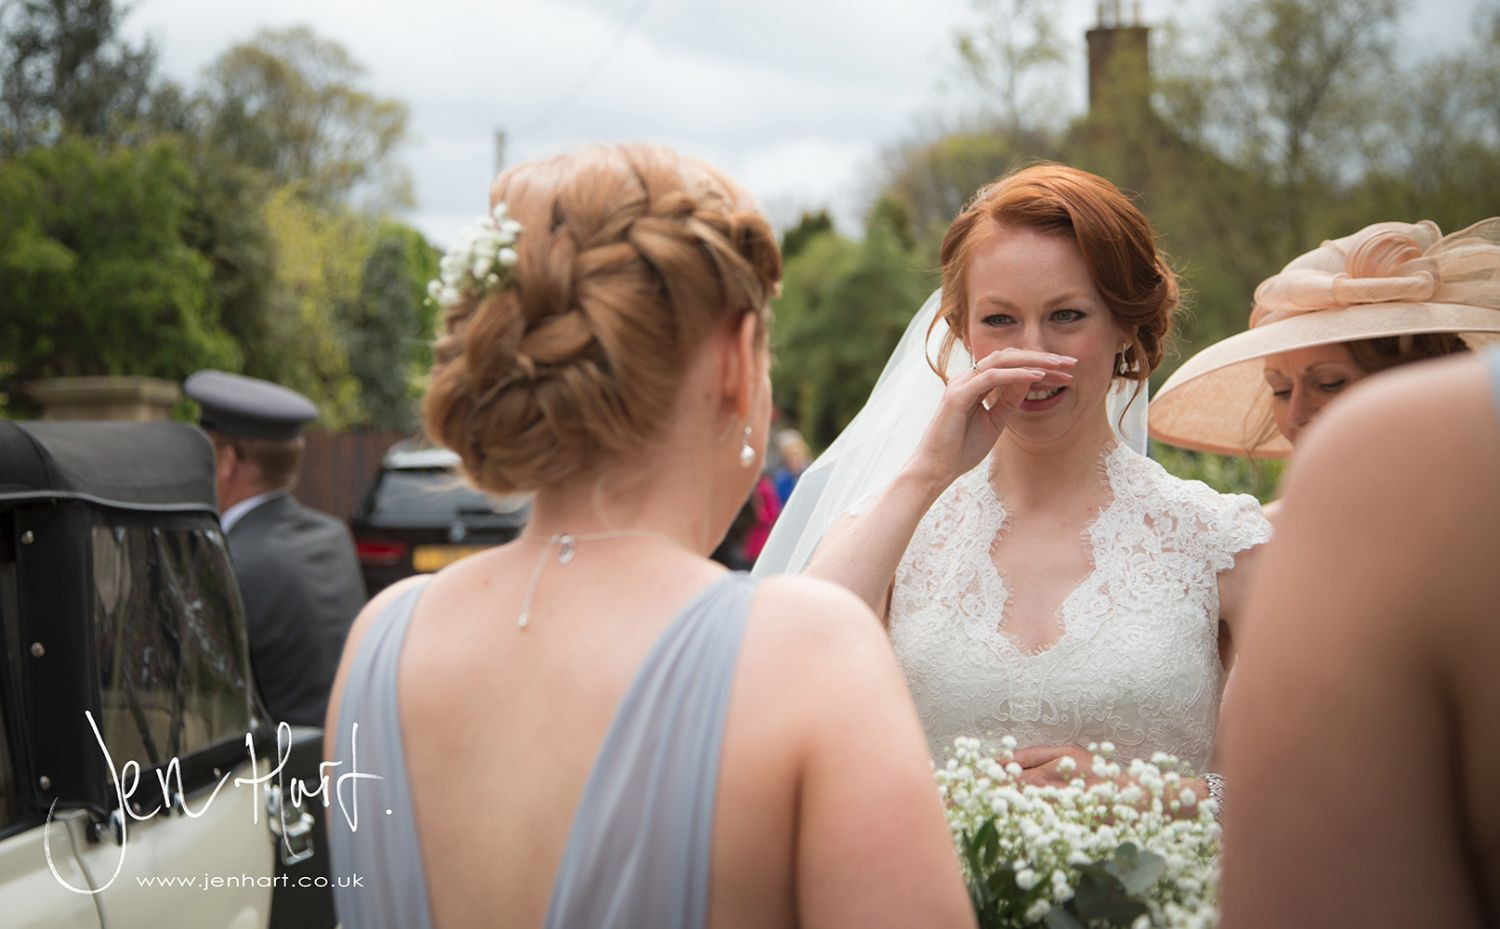 Photograph-Wedding-Whinstone-View_02May15_050